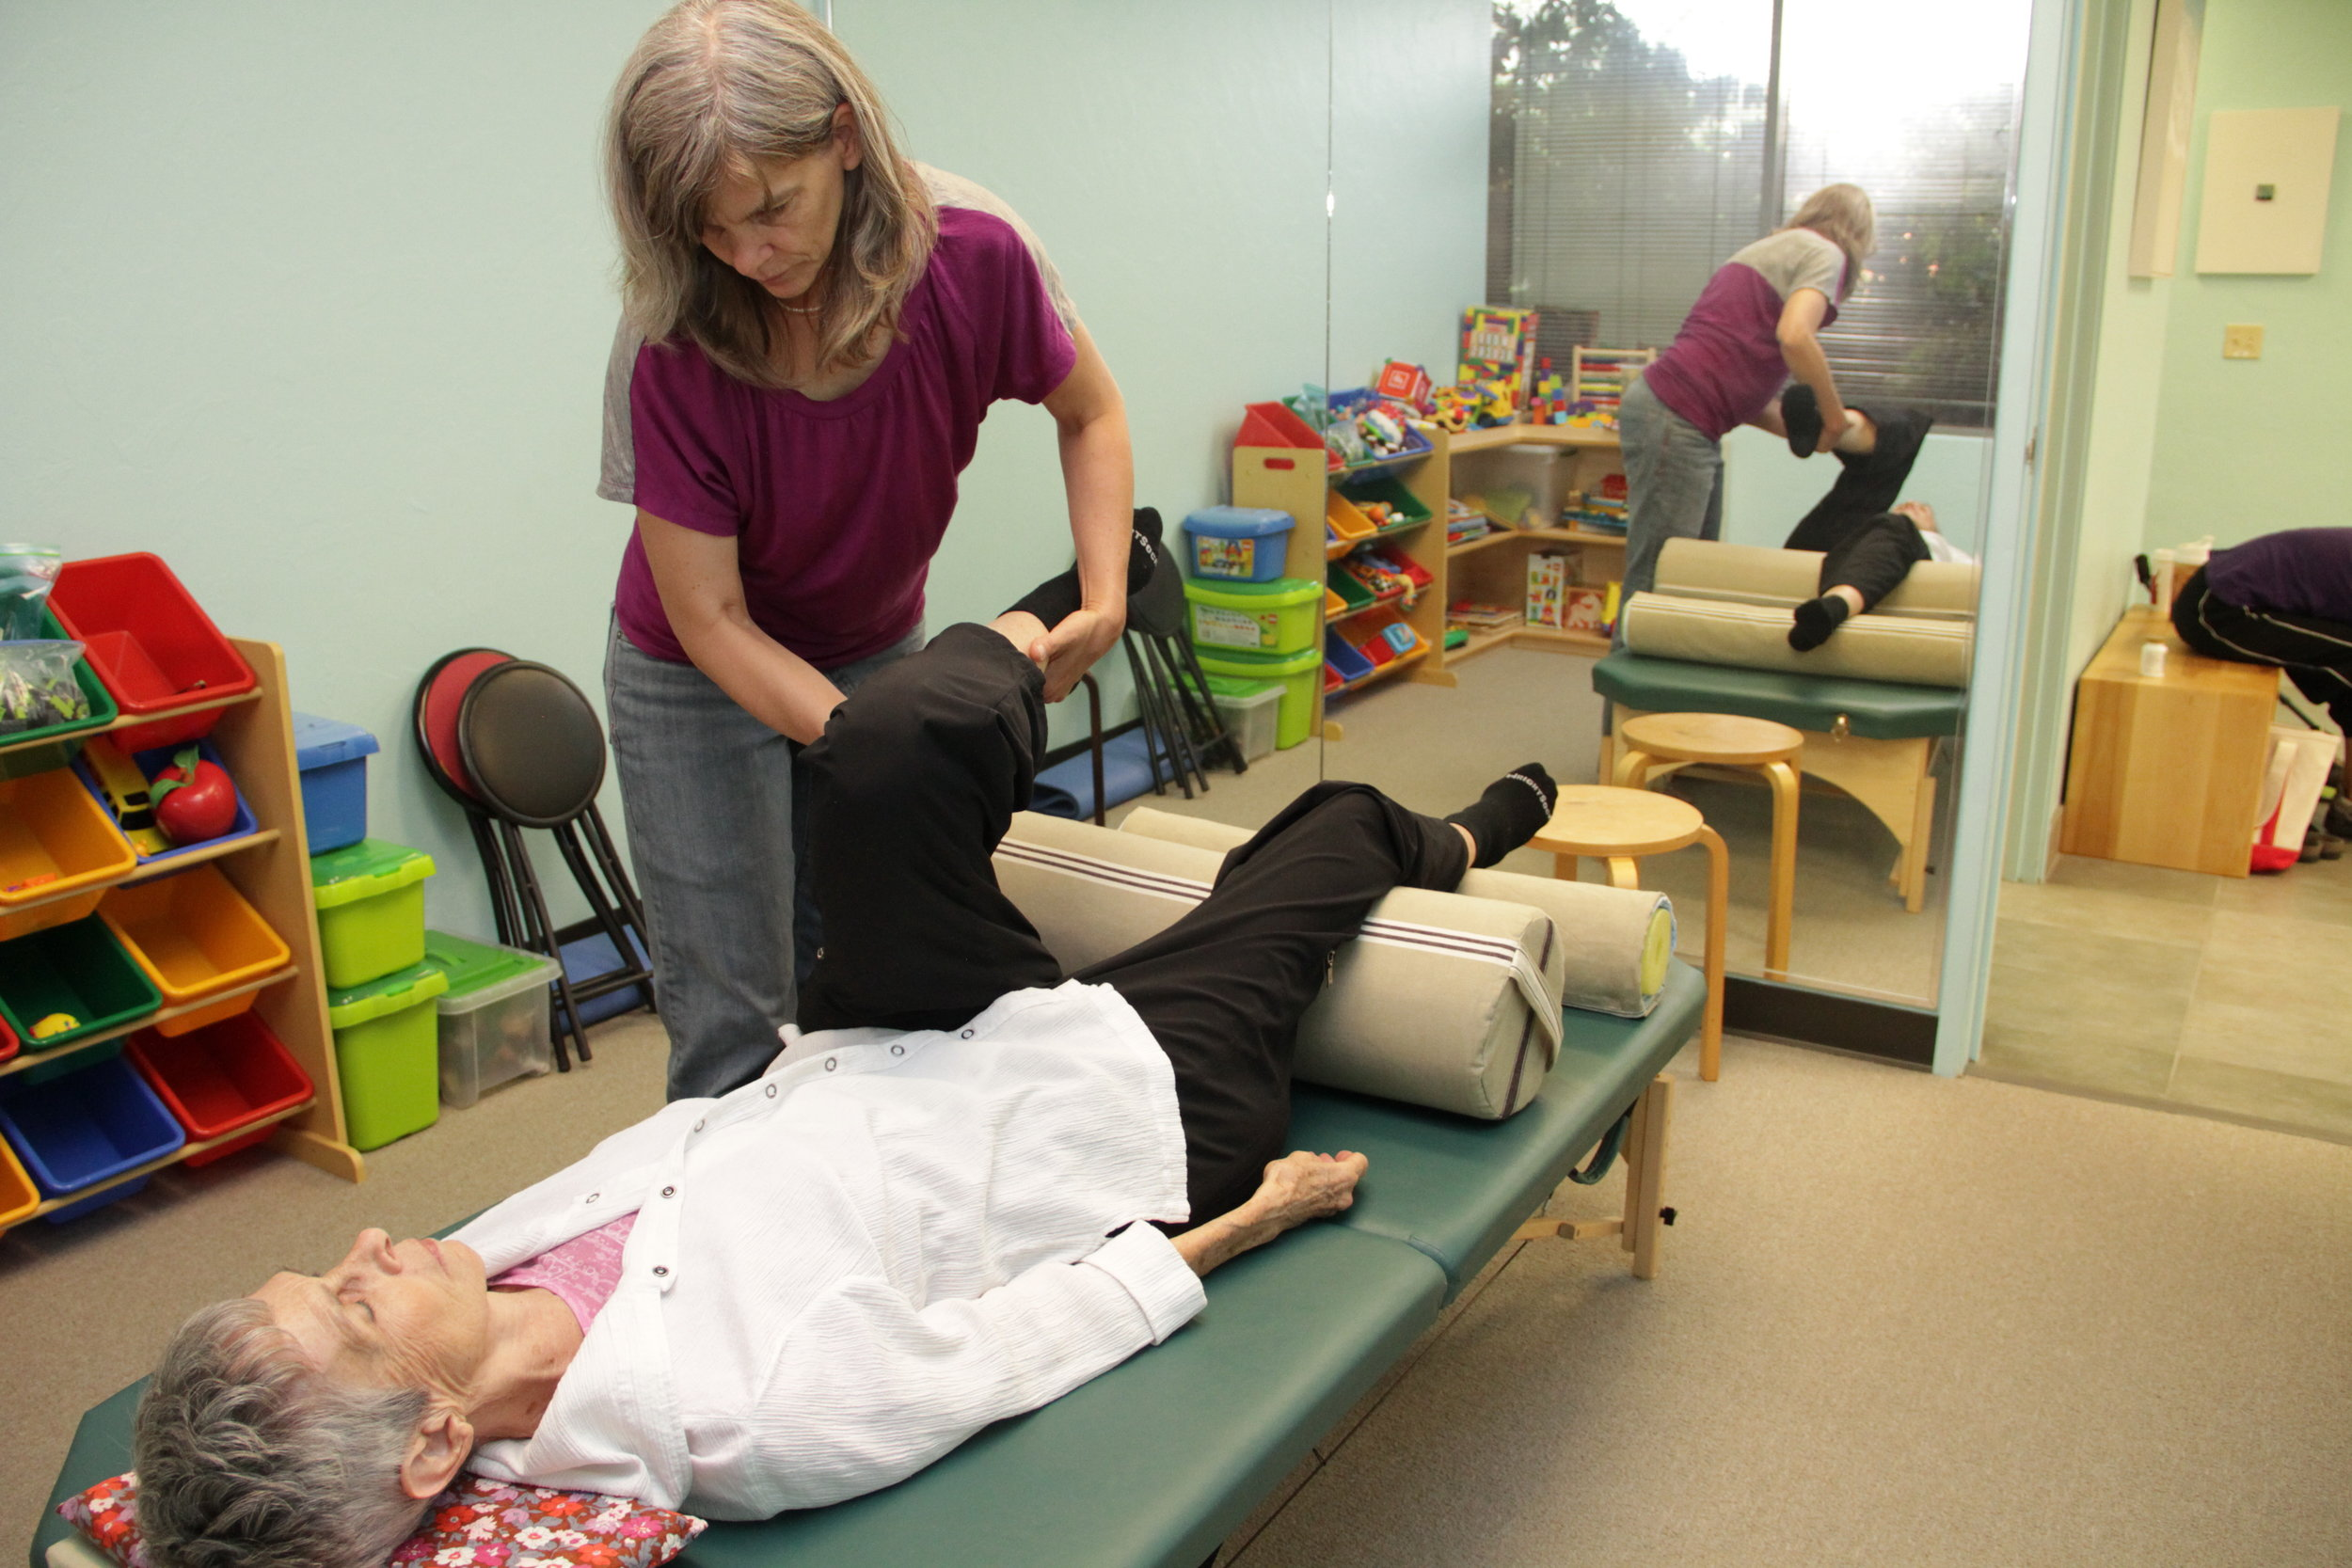 One-to-one Anat Baniel Method NeuroMovement lesson for an adult.